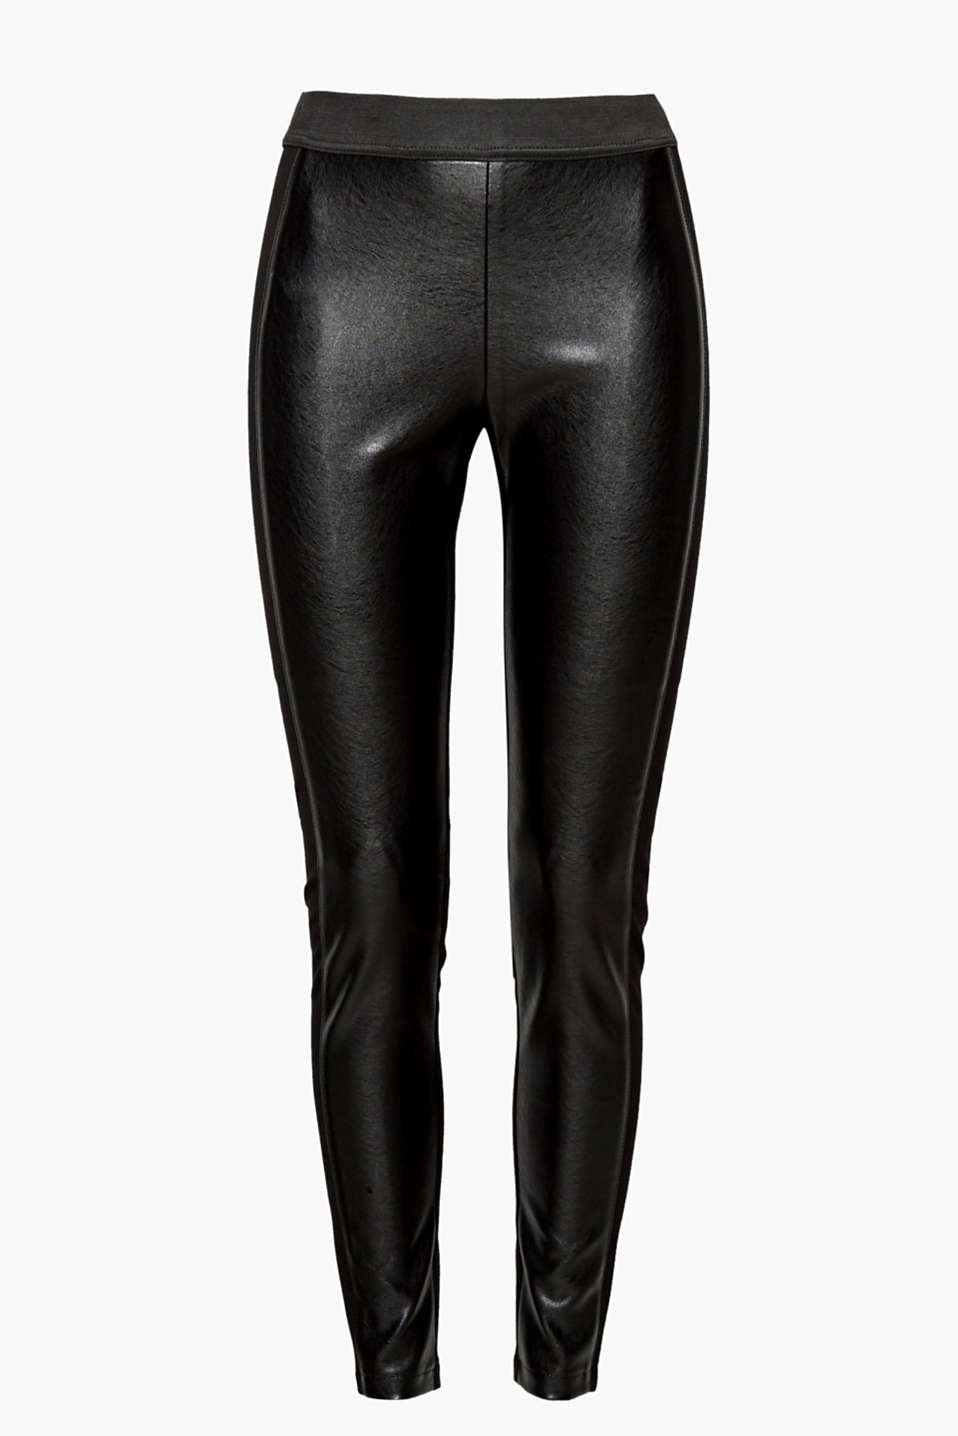 Has a skin-fit sit and gets a cool faux leather look on the front: these stylish leggings made of a material mix!